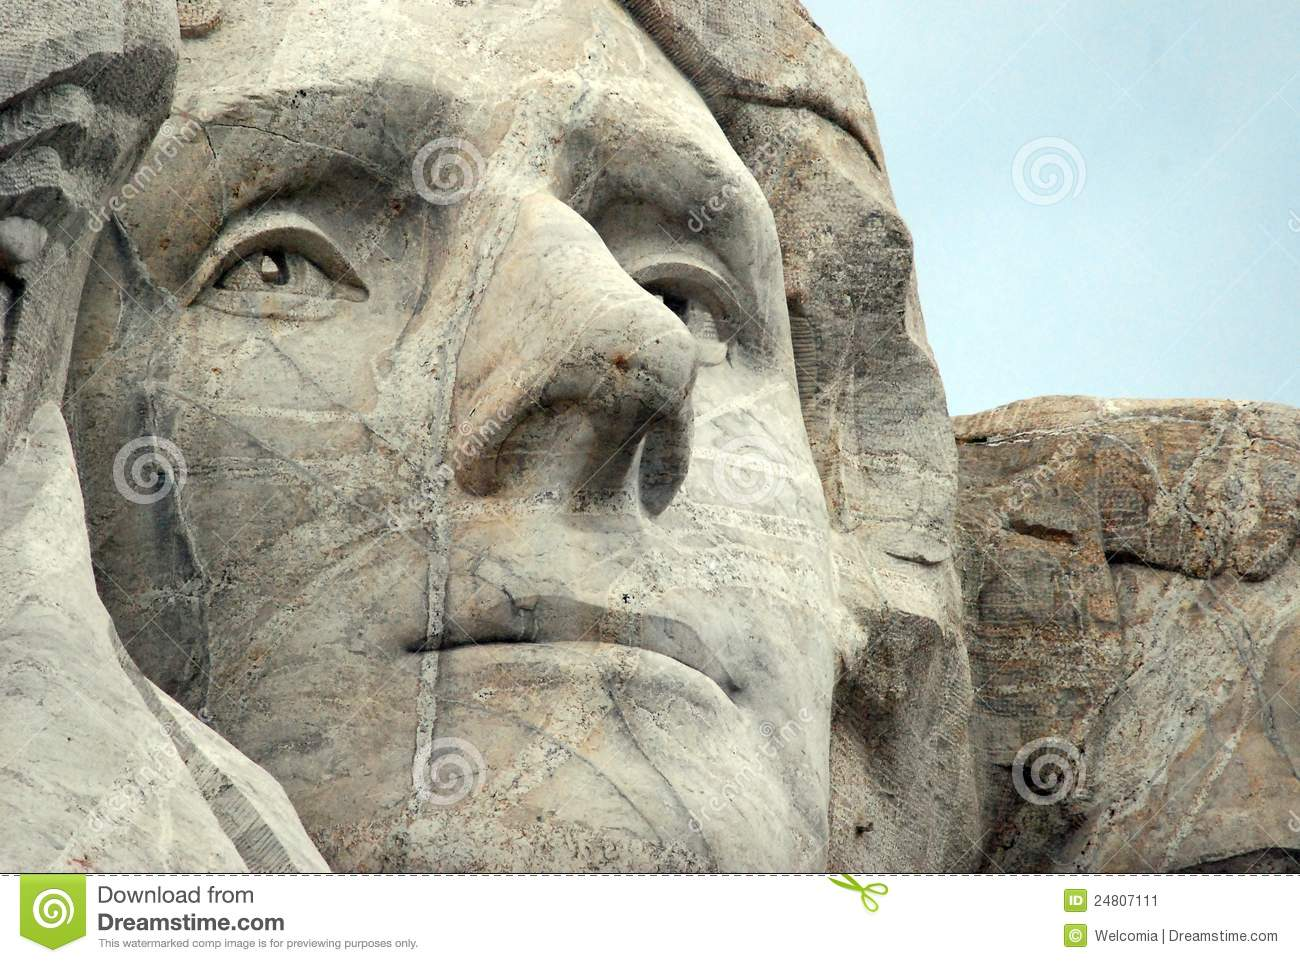 Jefferson Hills United States  City pictures : Mount Rushmore, South Dakota Black Hills: Thomas Jefferson Sculpture ...